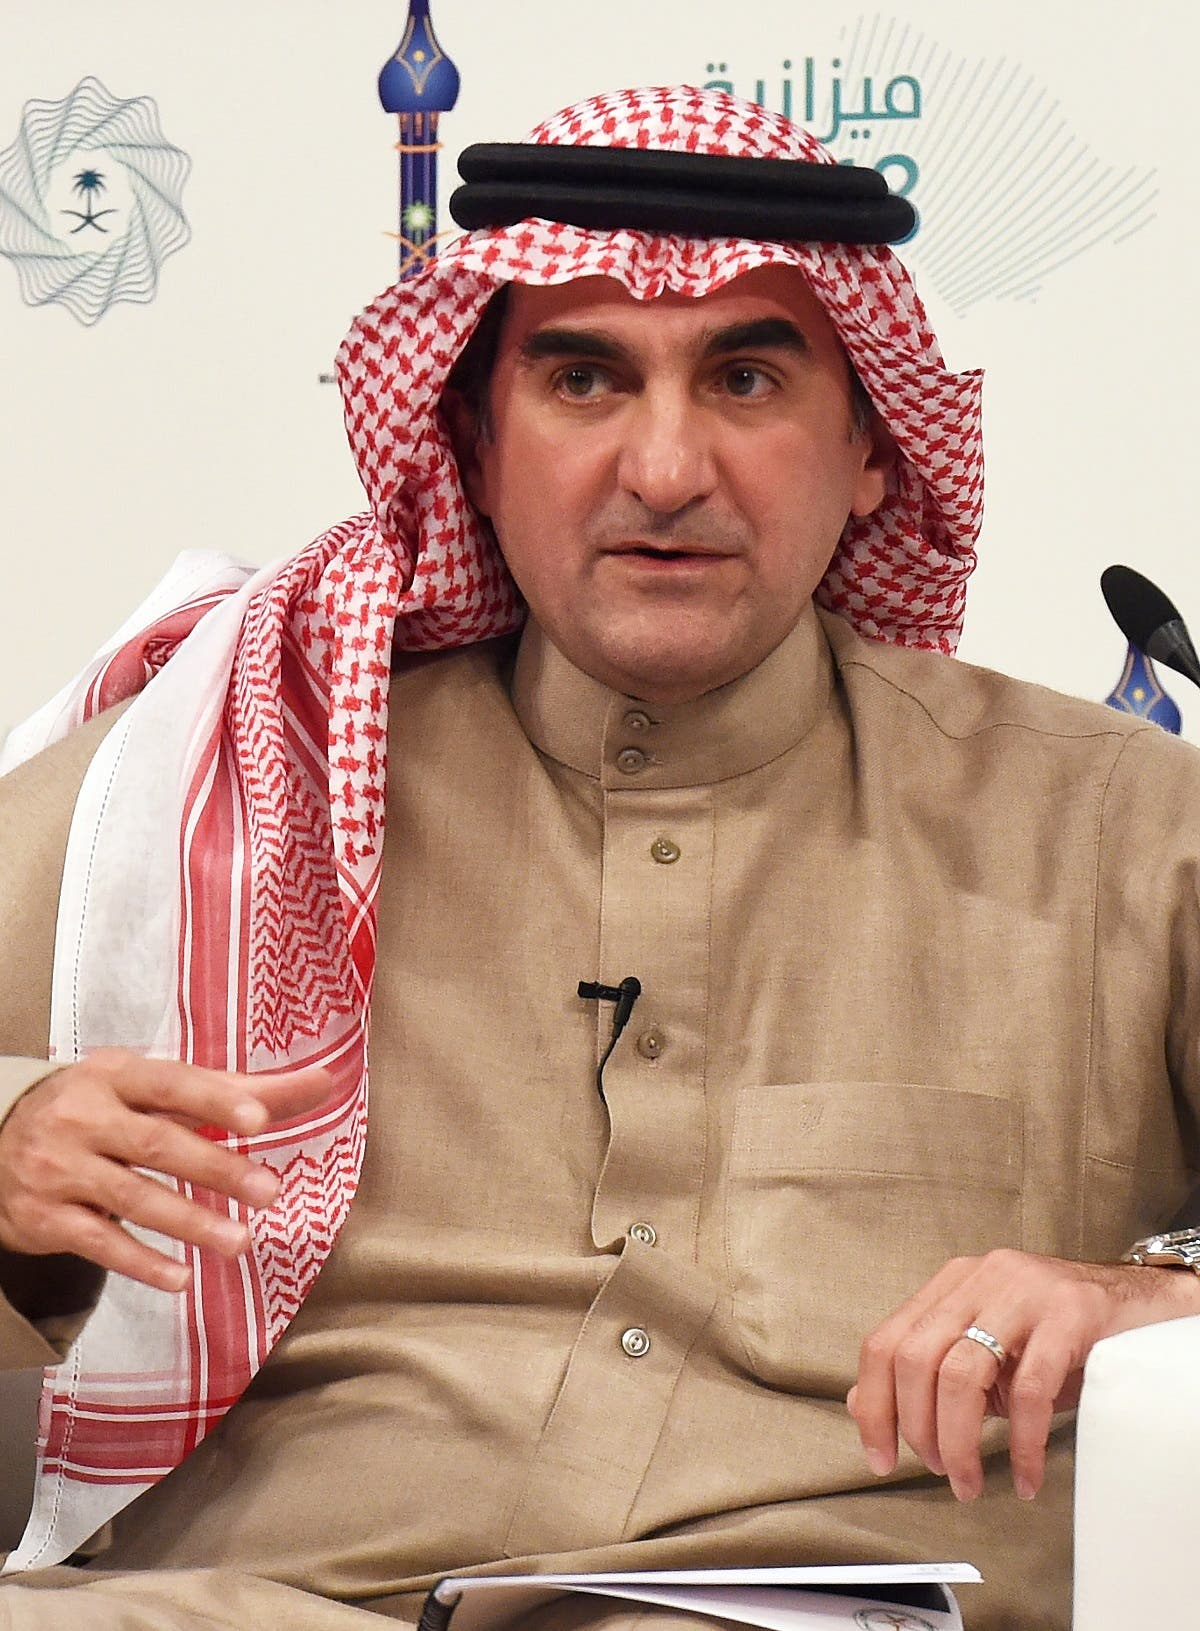 Saudi managing director of the Public Investment Fund Yasir Al-Rumayyan speaks during a press conference on the State Budget 2018 at the Saudi Press Agency (SPA) offices in Riyadh, on December 20, 2017. (AFP)